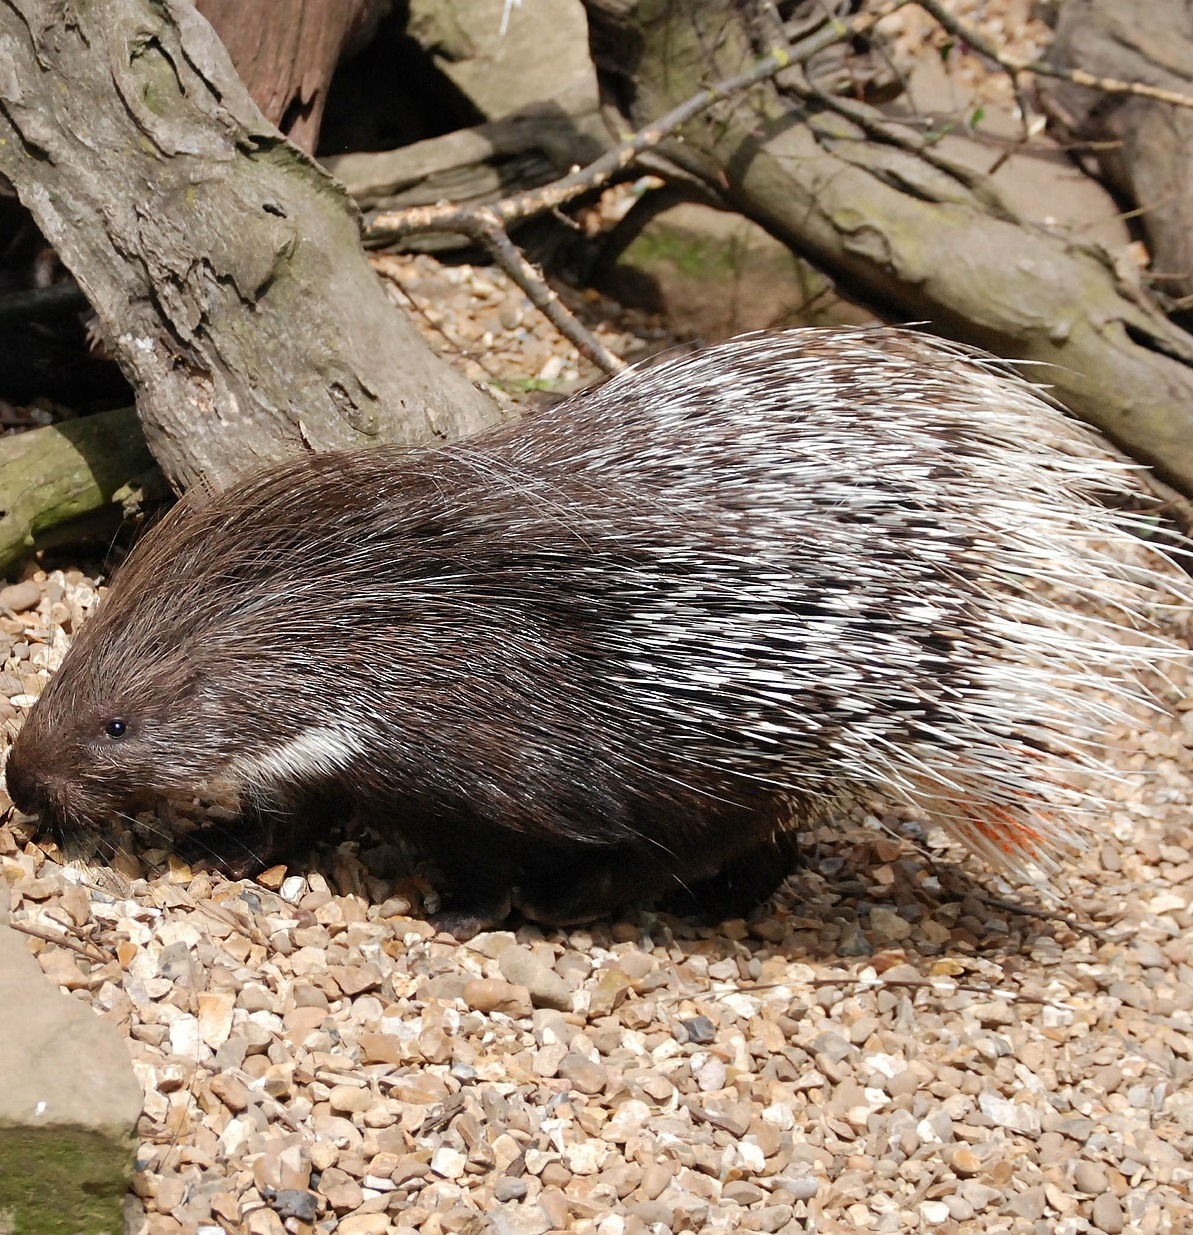 A porcupine with it's quills.